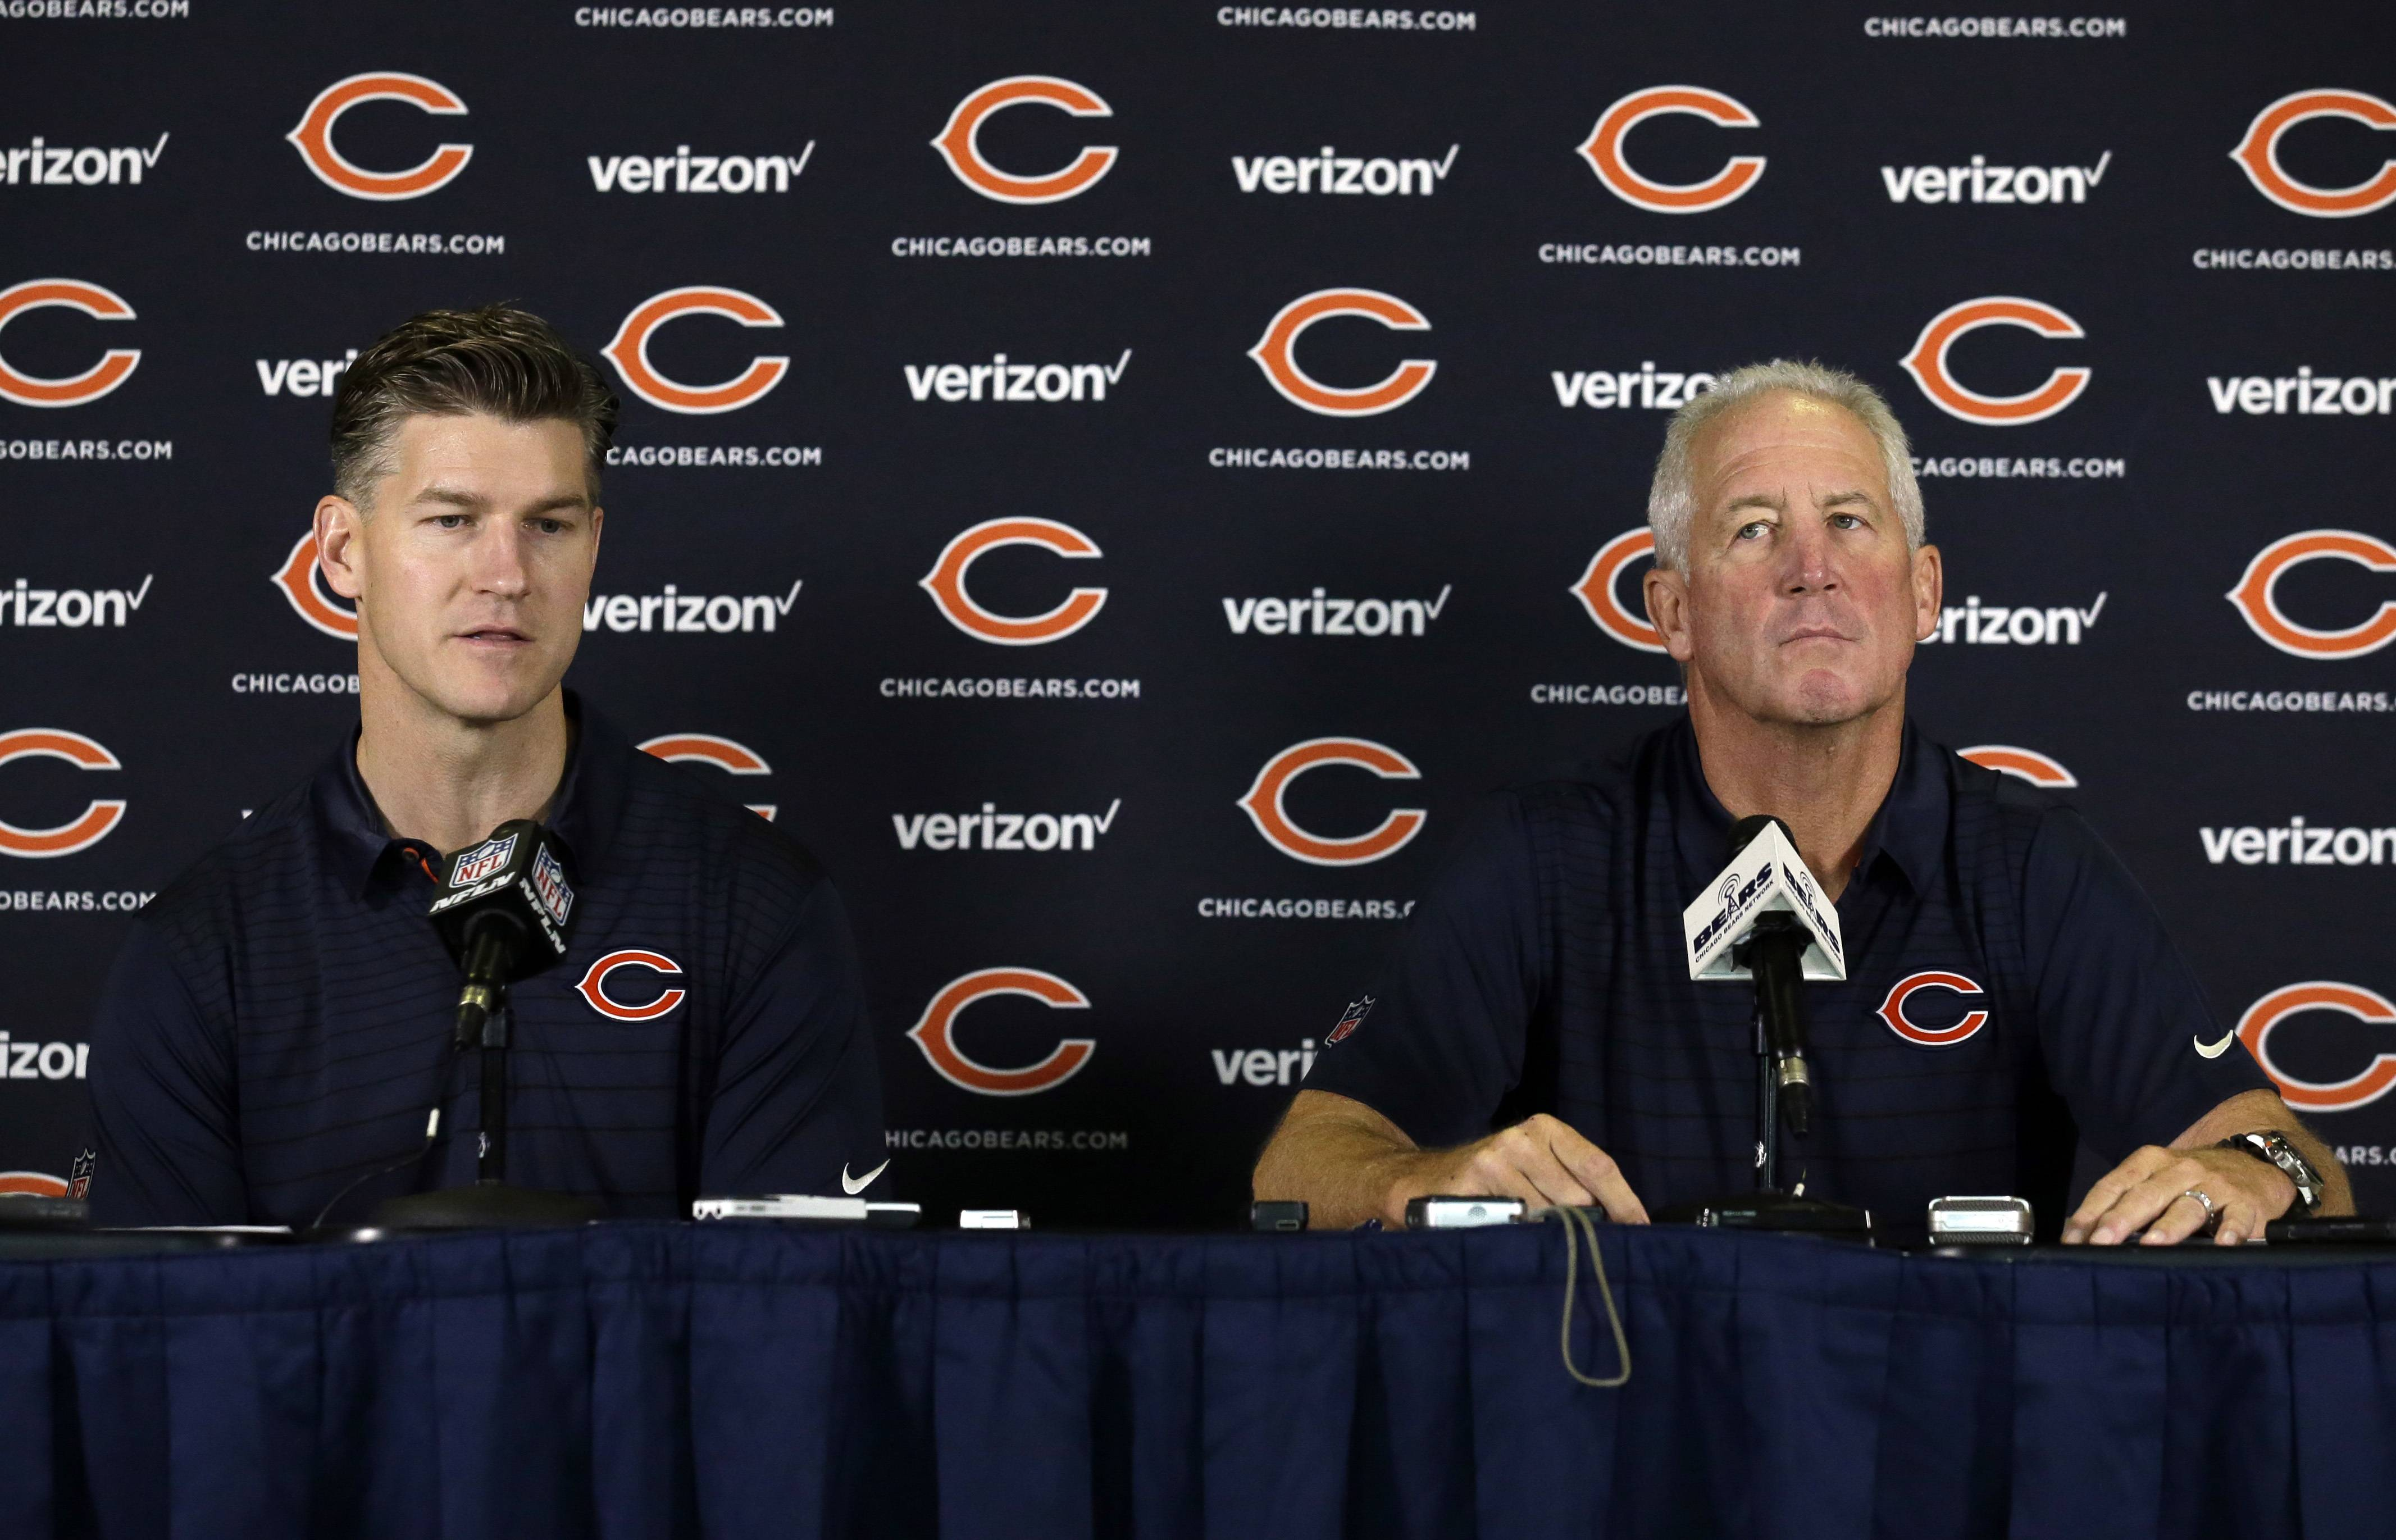 Chicago Bears general manager Ryan Pace, left, and head coach John Fox listen to questions during an NFL football training camp in Bourbonnais, Ill., Wednesday, July 26, 2017.